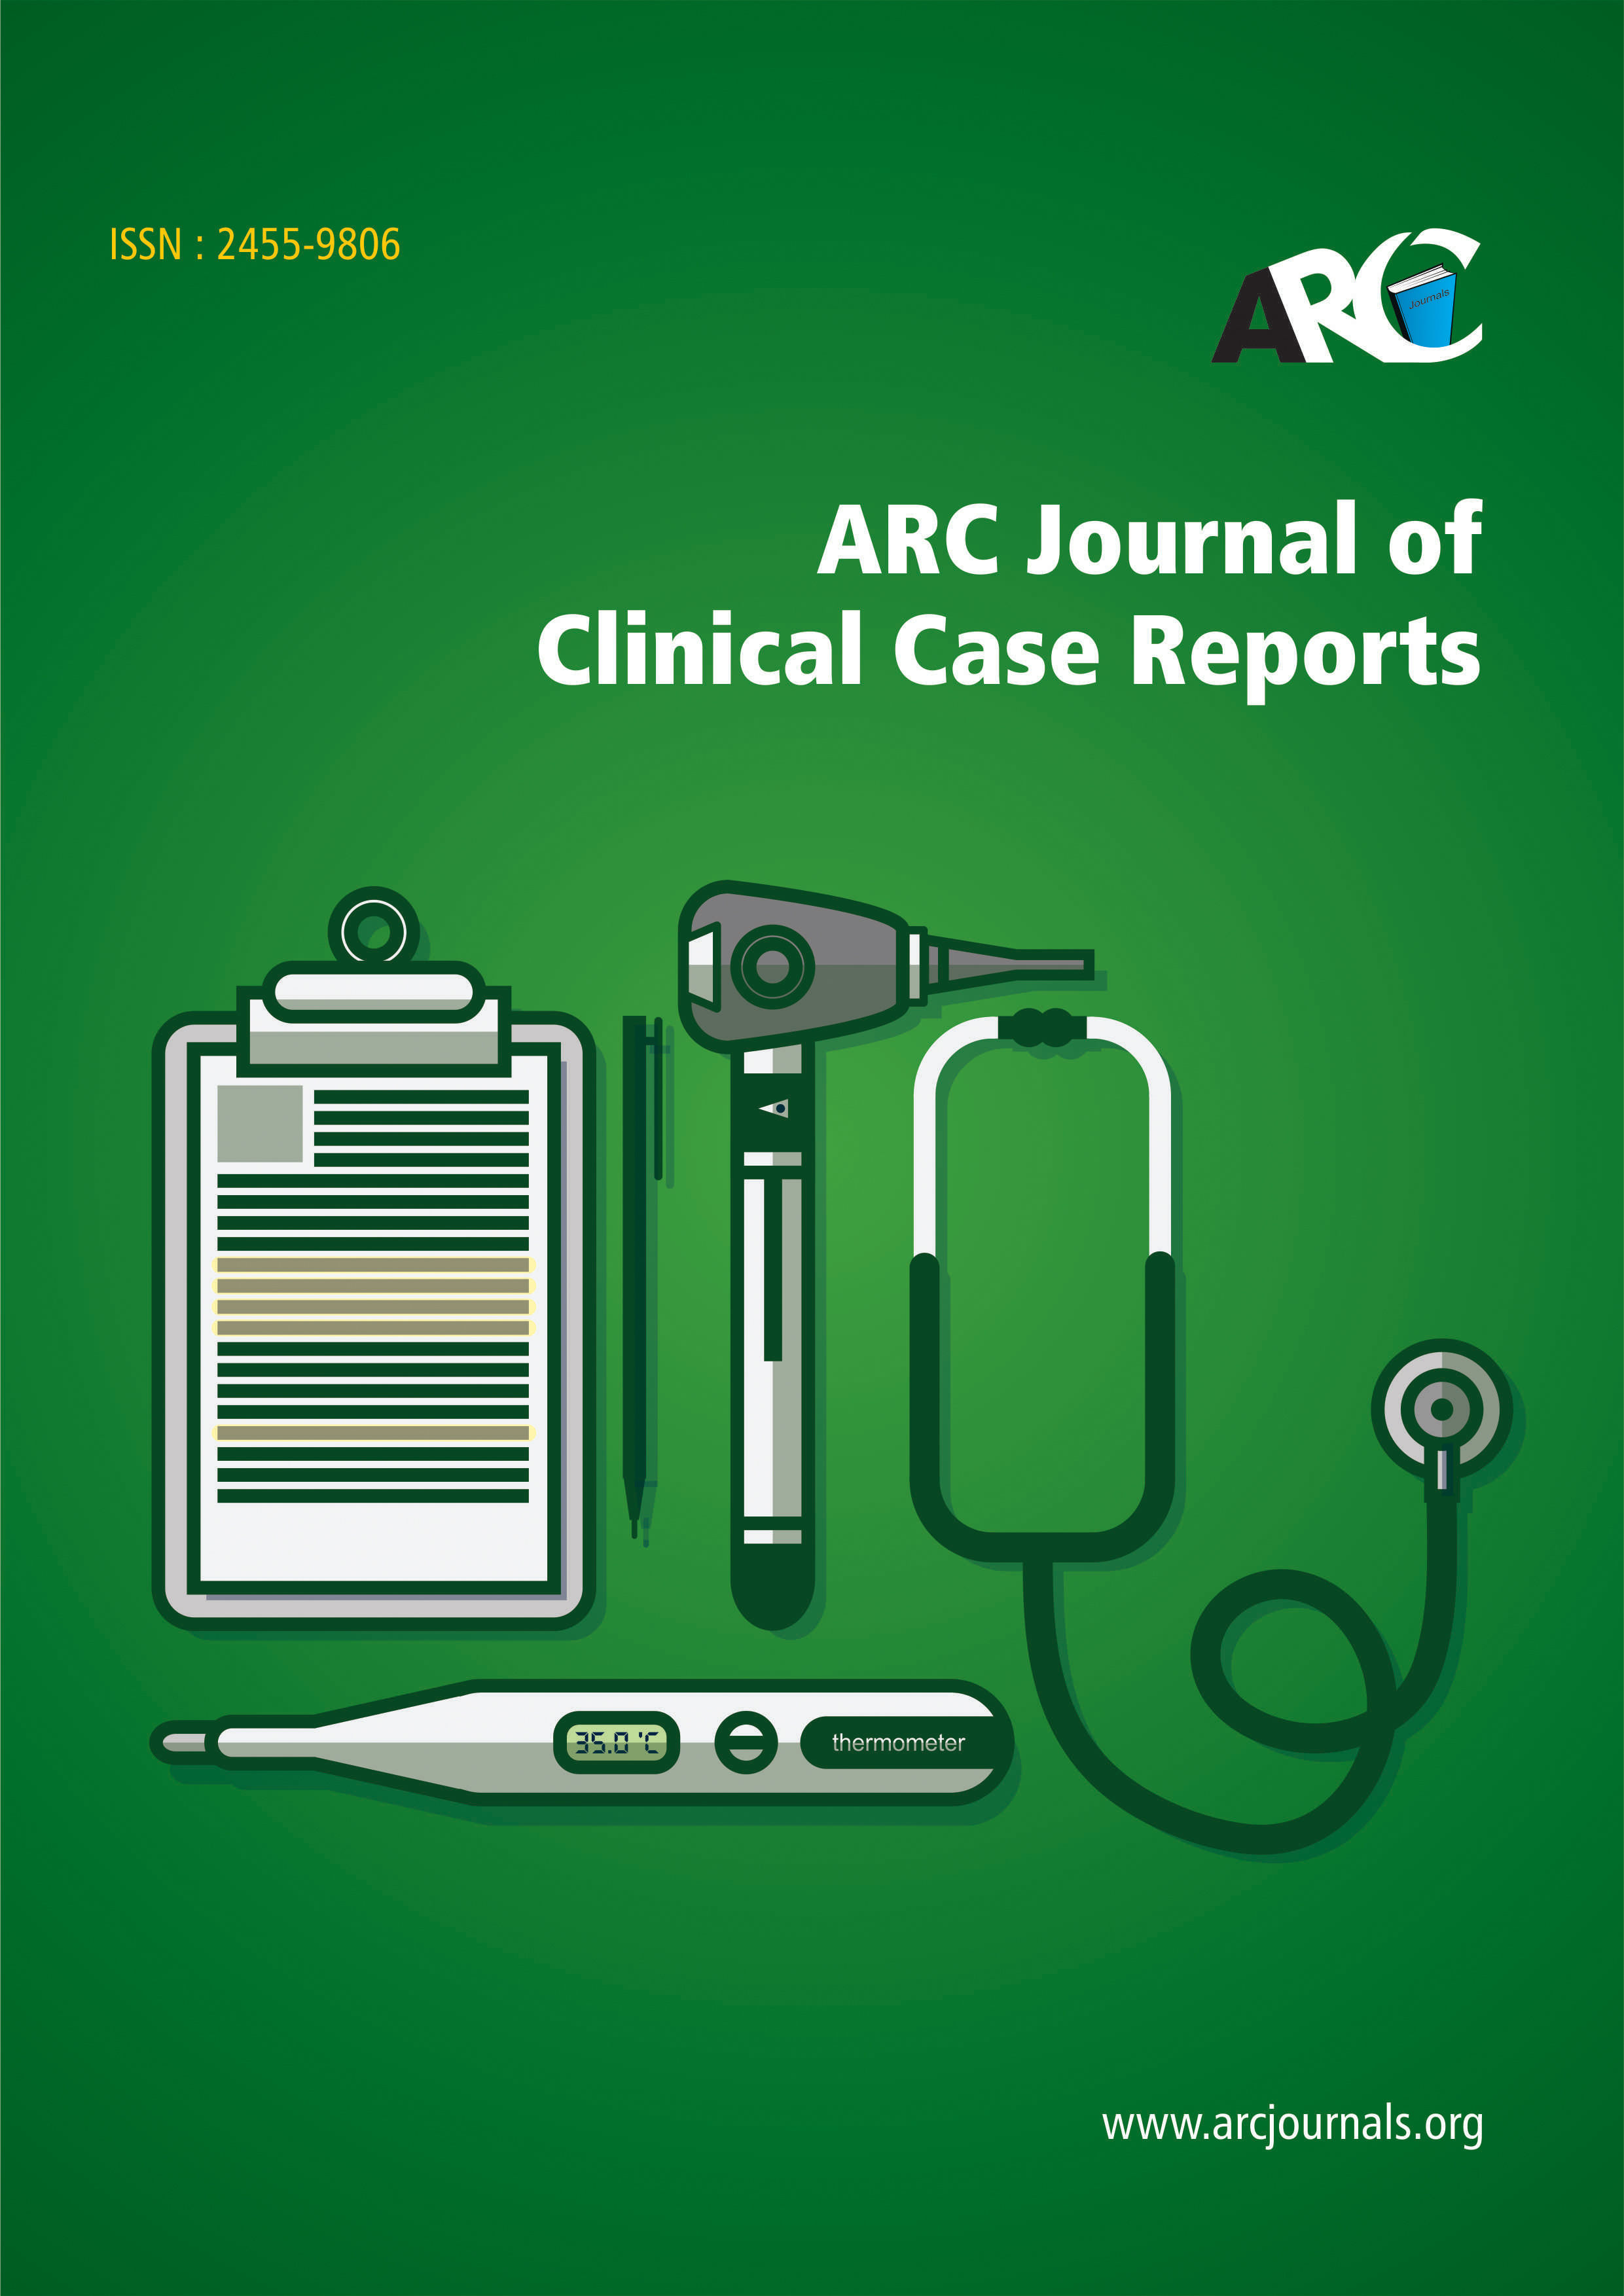 ARC Journal of Clinical Case Reports